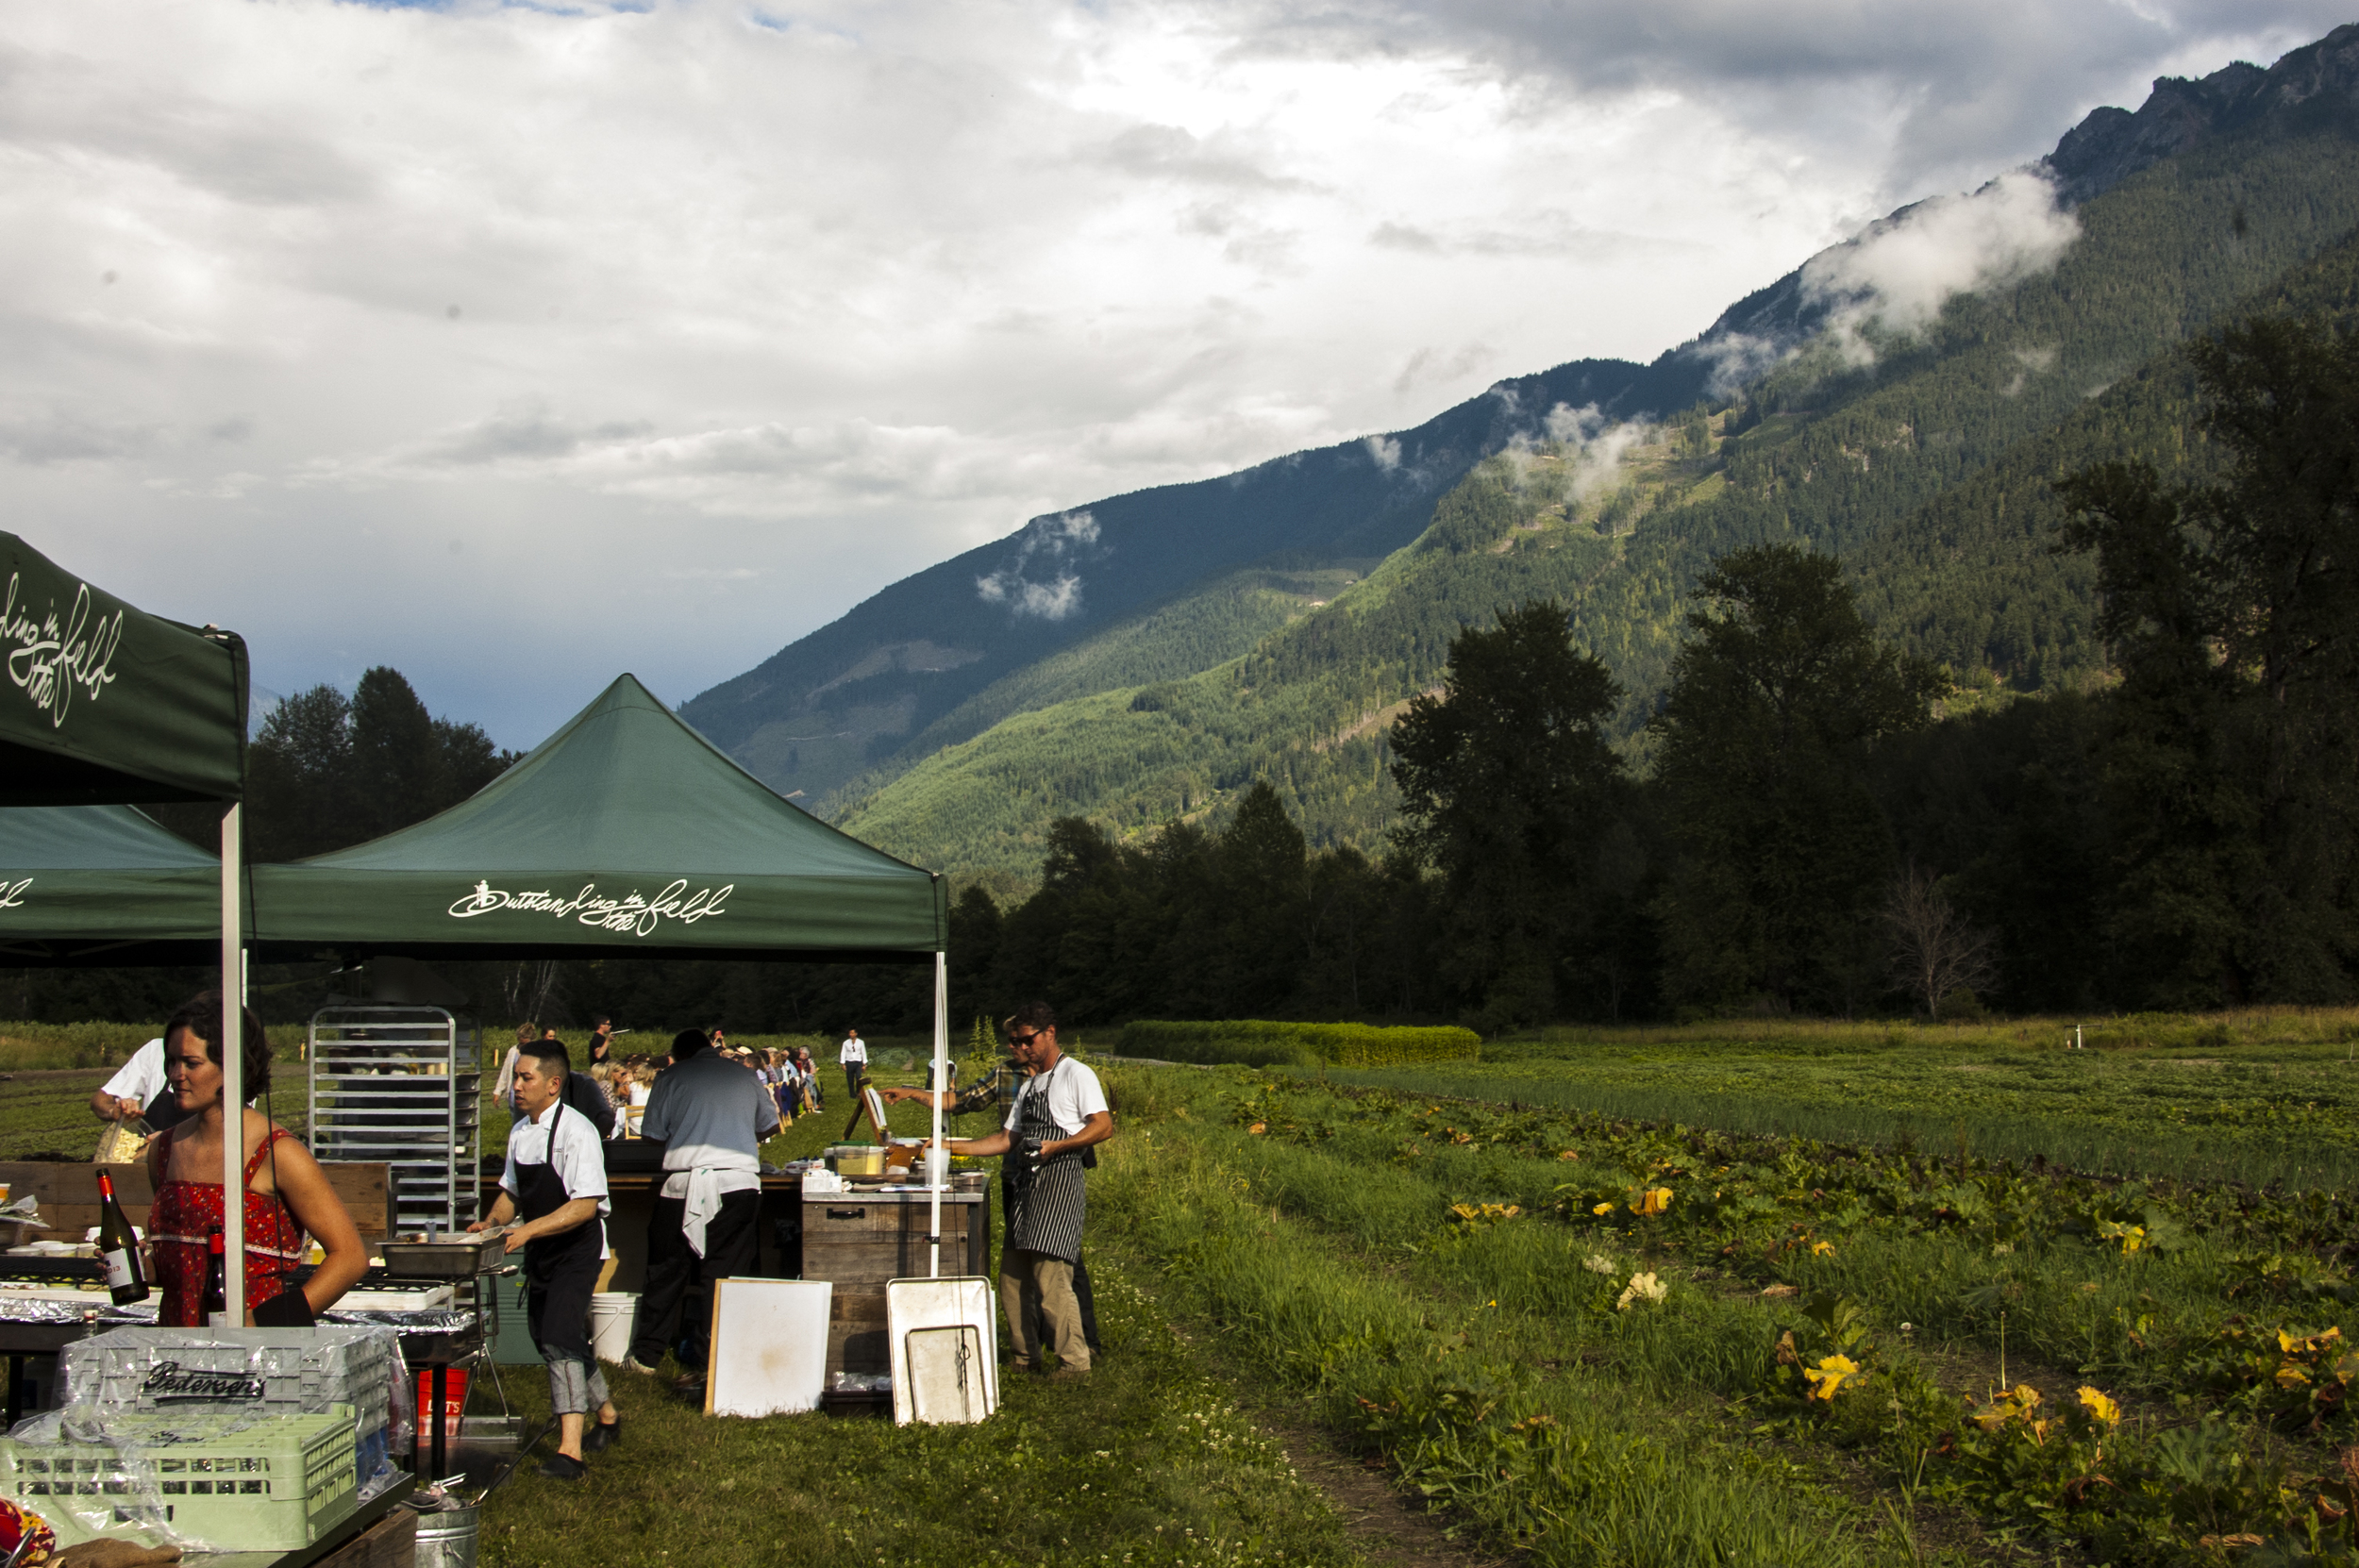 The Kitchen at North Arm Farm in Pemberton, British Columbia